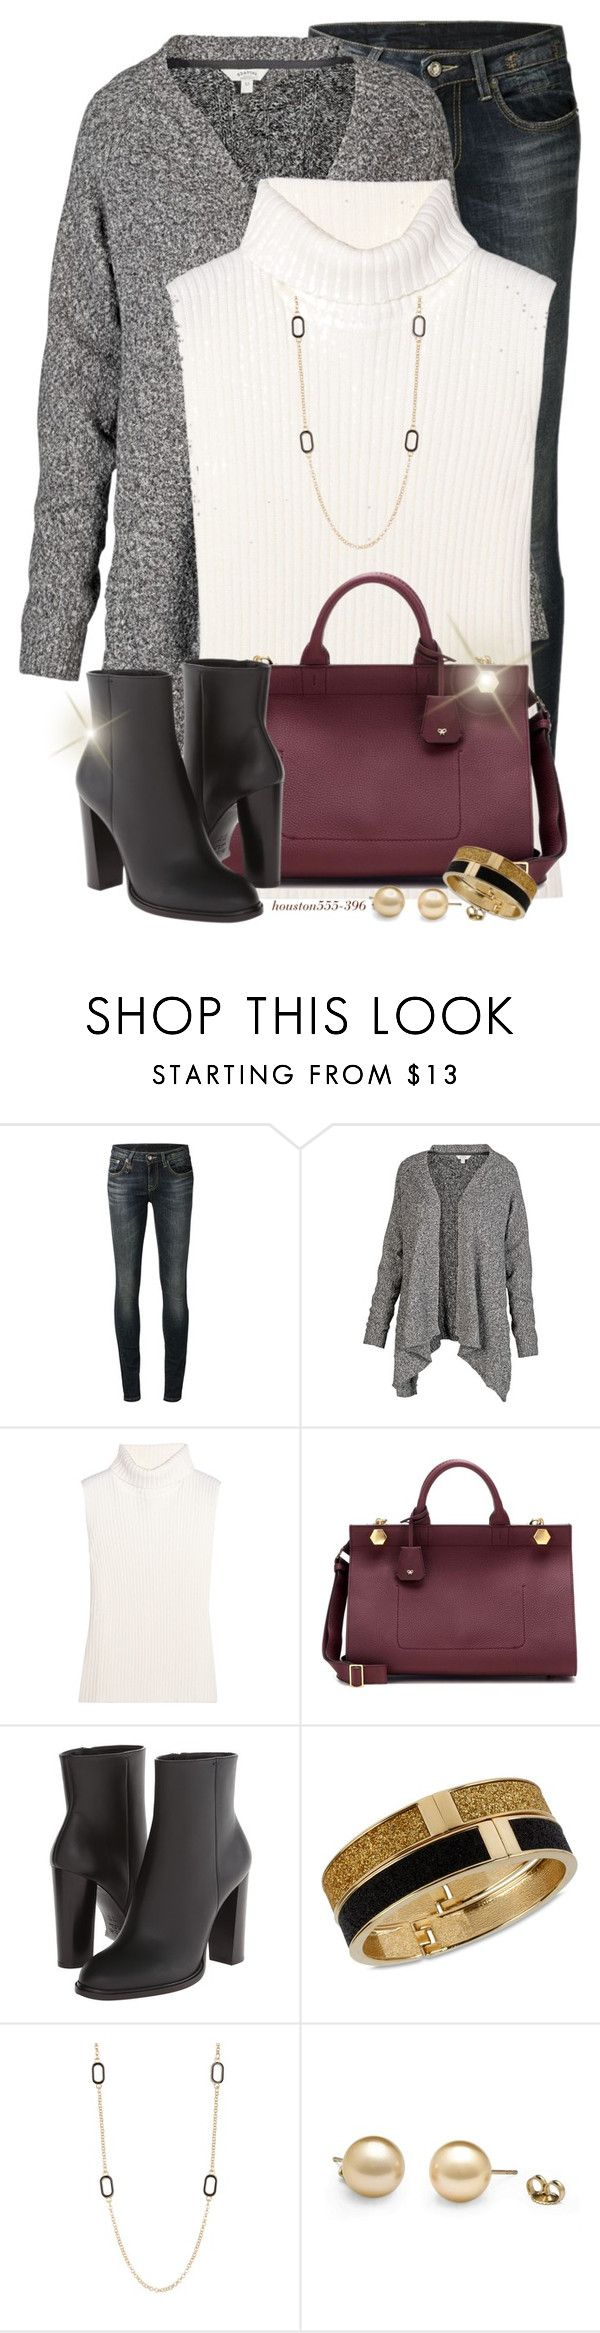 """""""Starting the new year with a few favorites! """" by houston555-396 ❤ liked on Polyvore featuring R13, Fat Face, 1205, Anya Hindmarch, Vince, Betsey Johnson and Nordstrom Rack"""